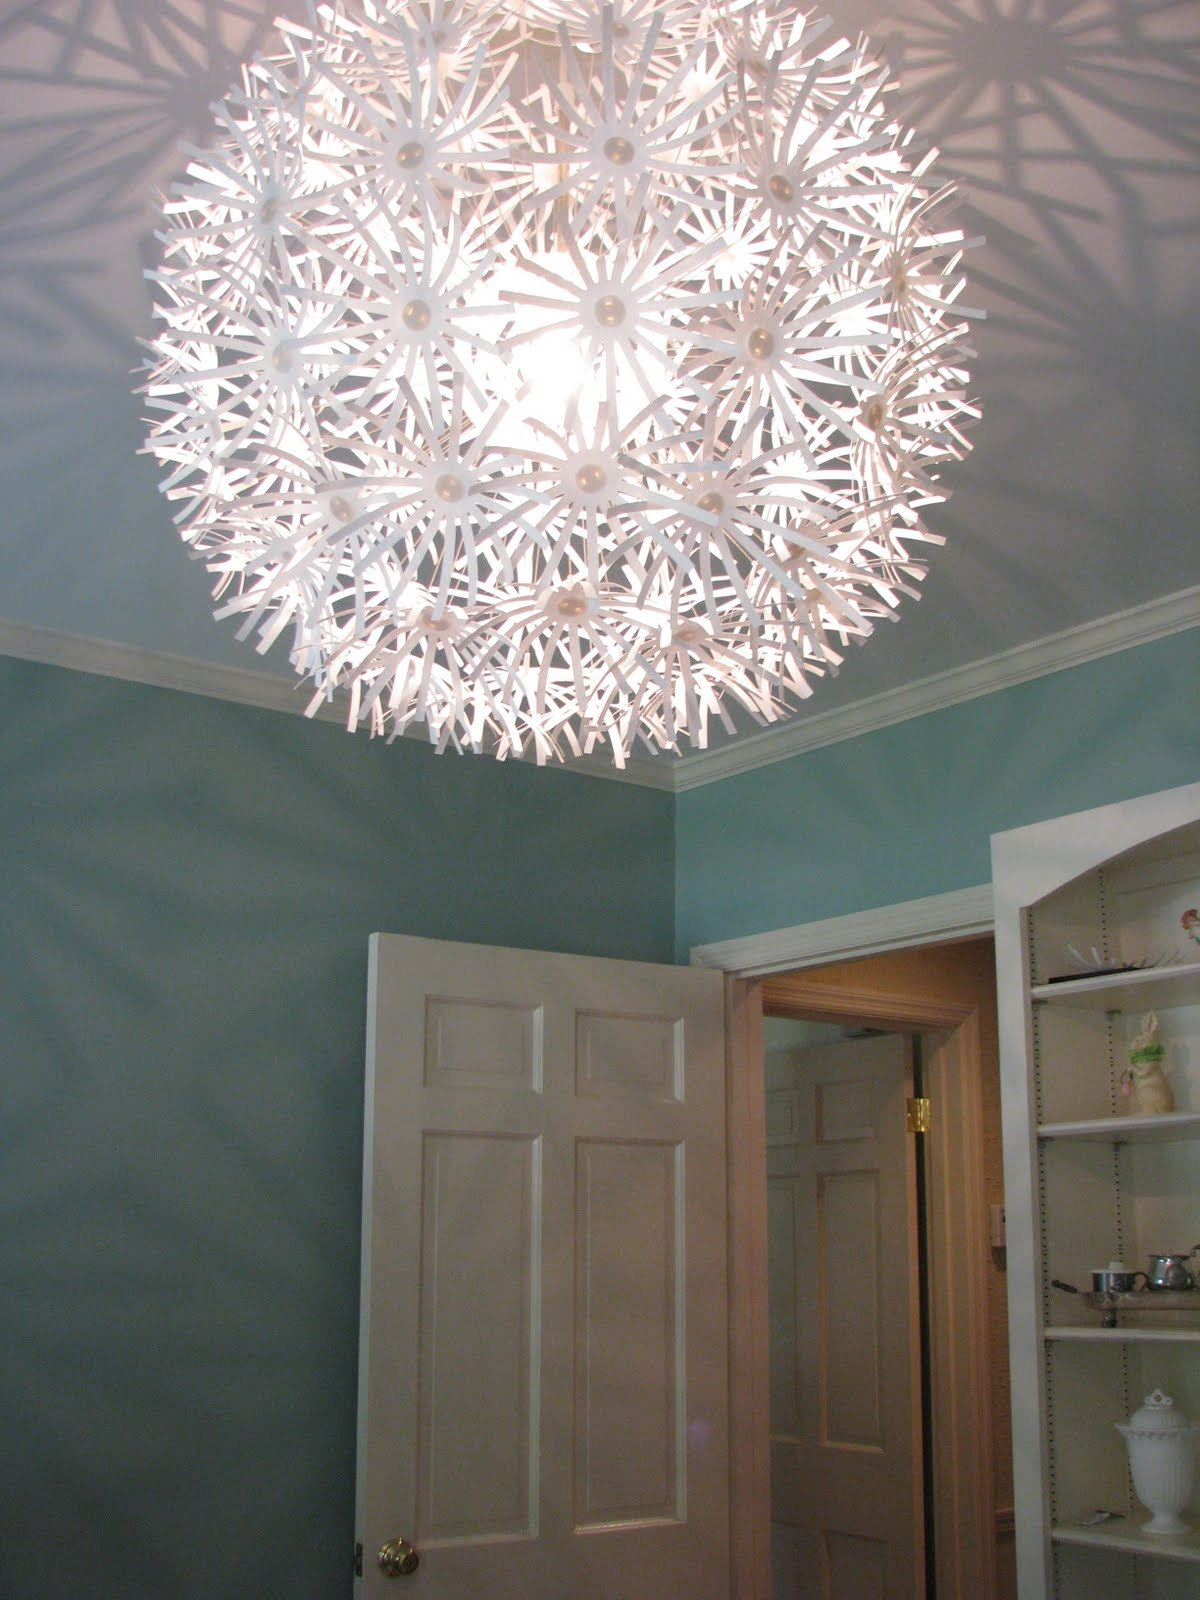 Flair for home design a nursery in two days seven easy steps for Nursery ceiling light fixture